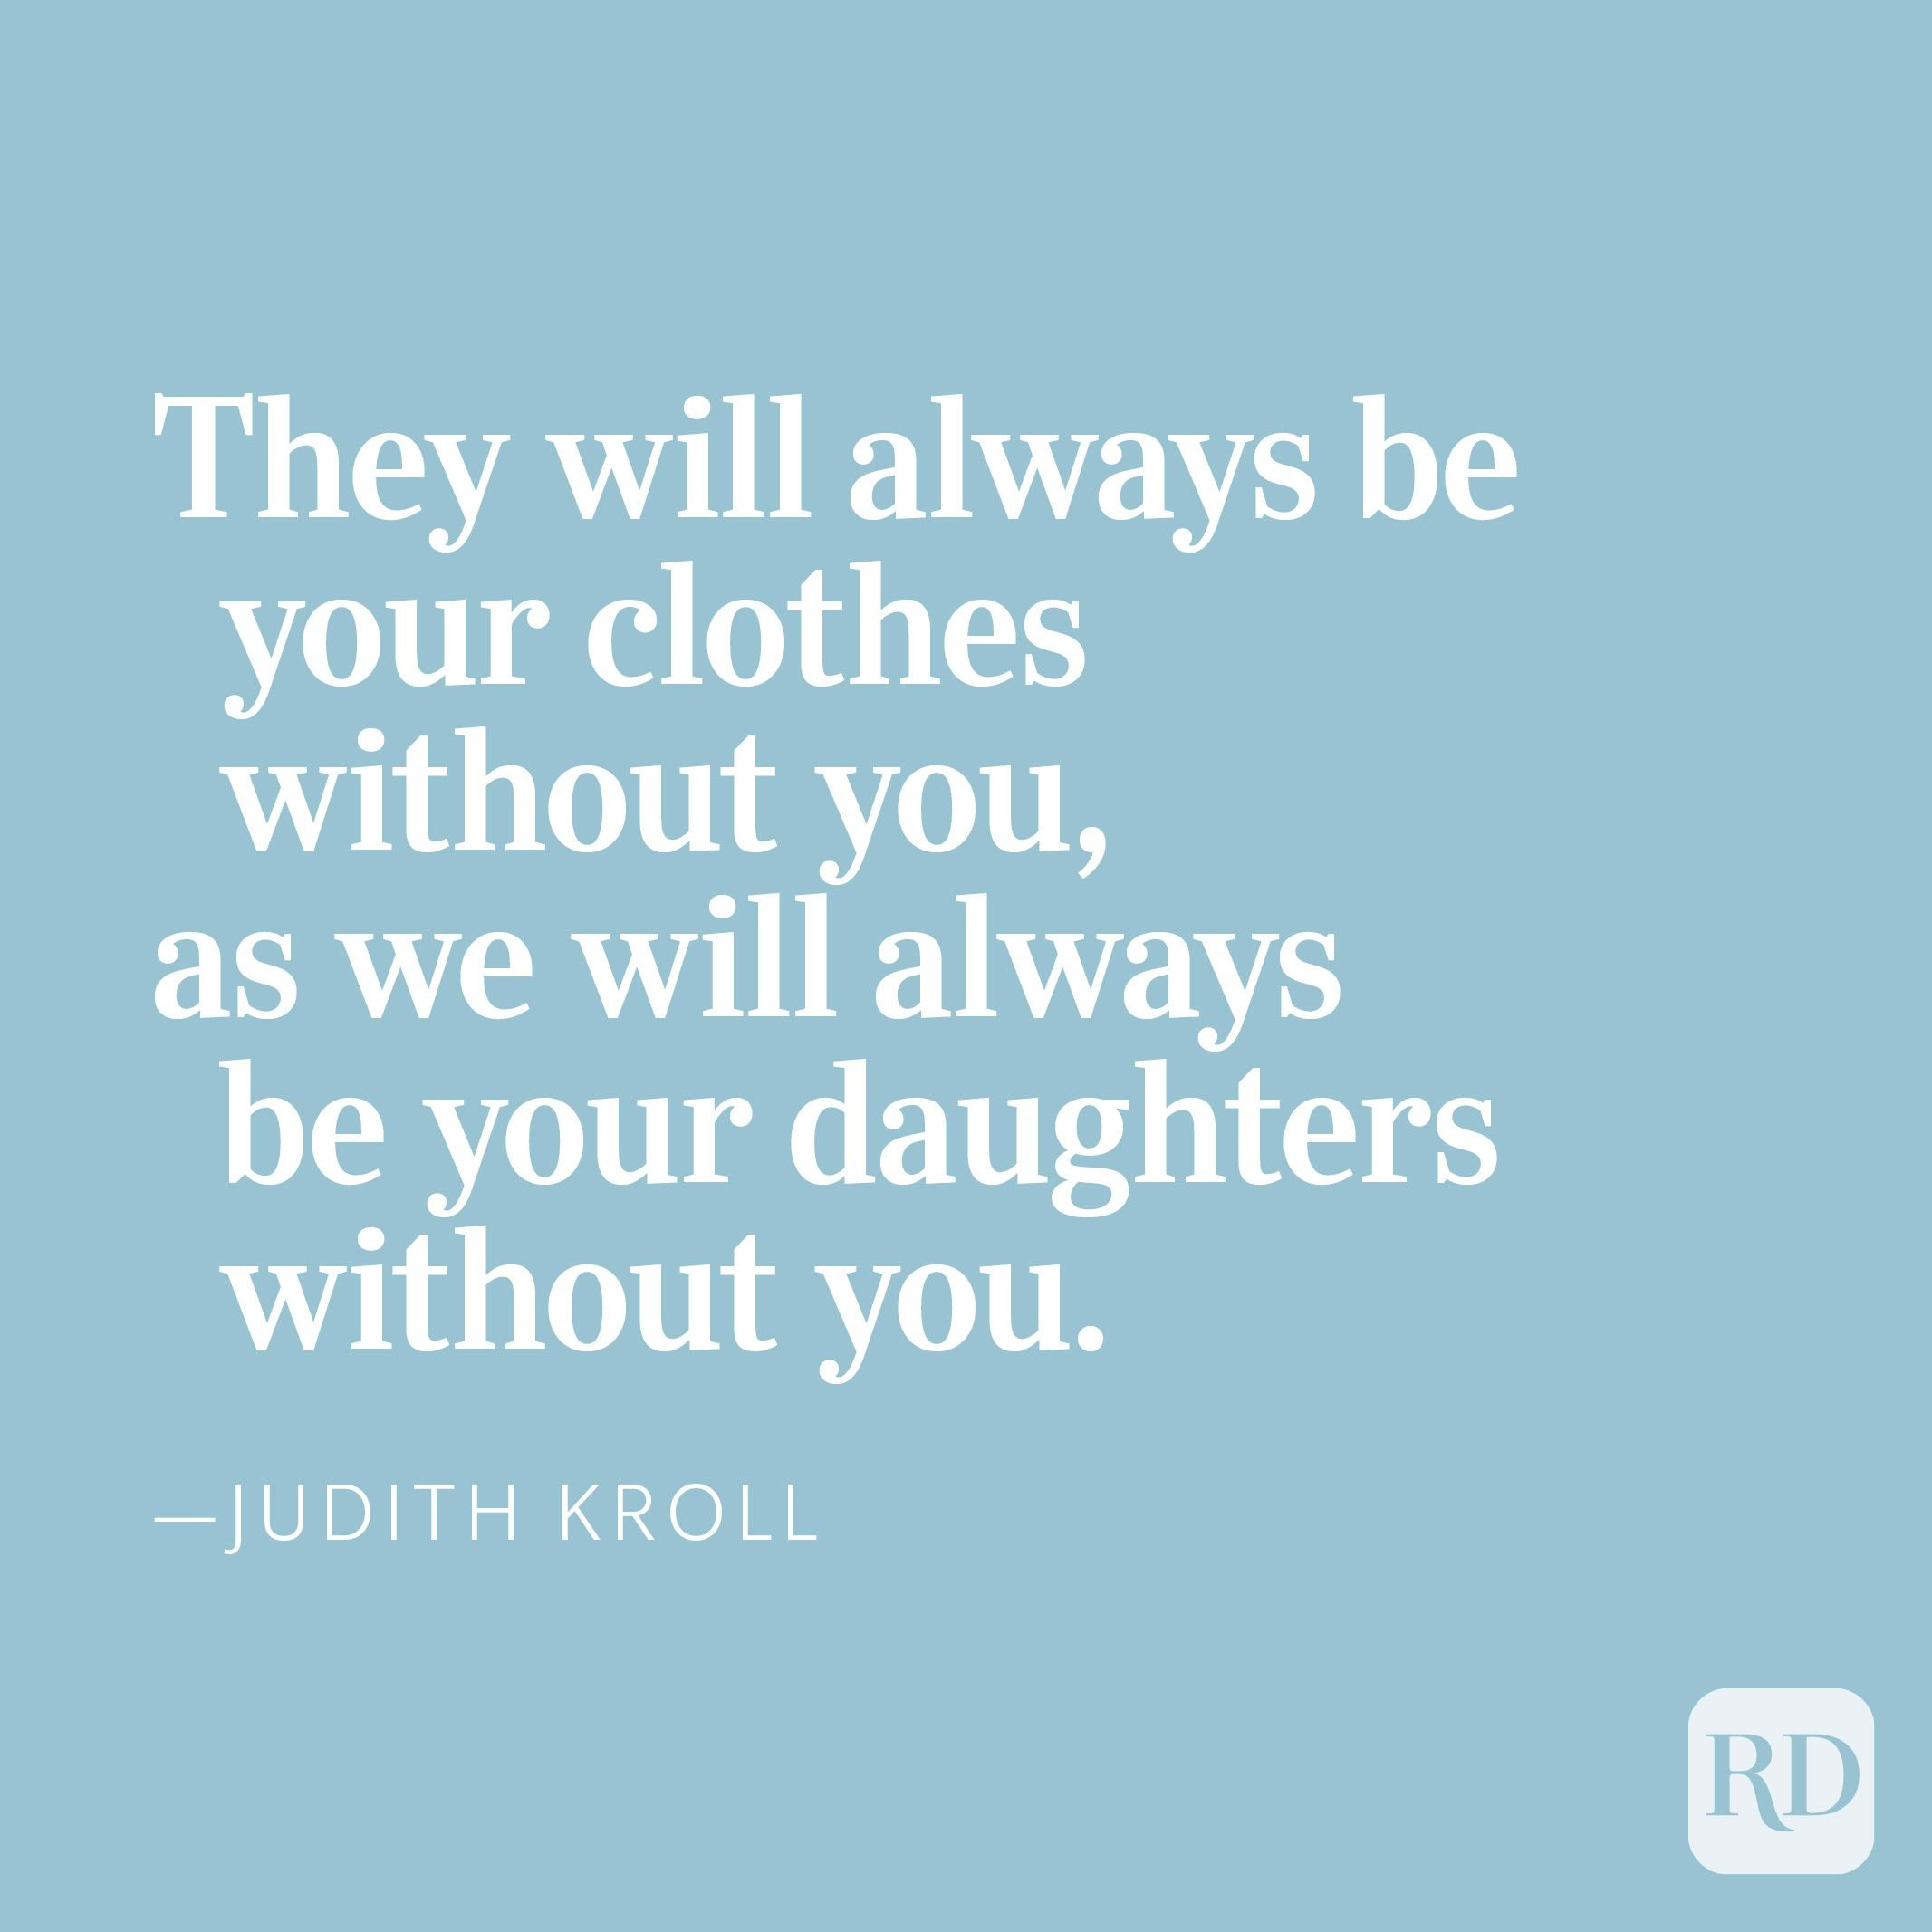 they will always be your clothes without you,as we will always be your daughters without you. —Judith Kroll